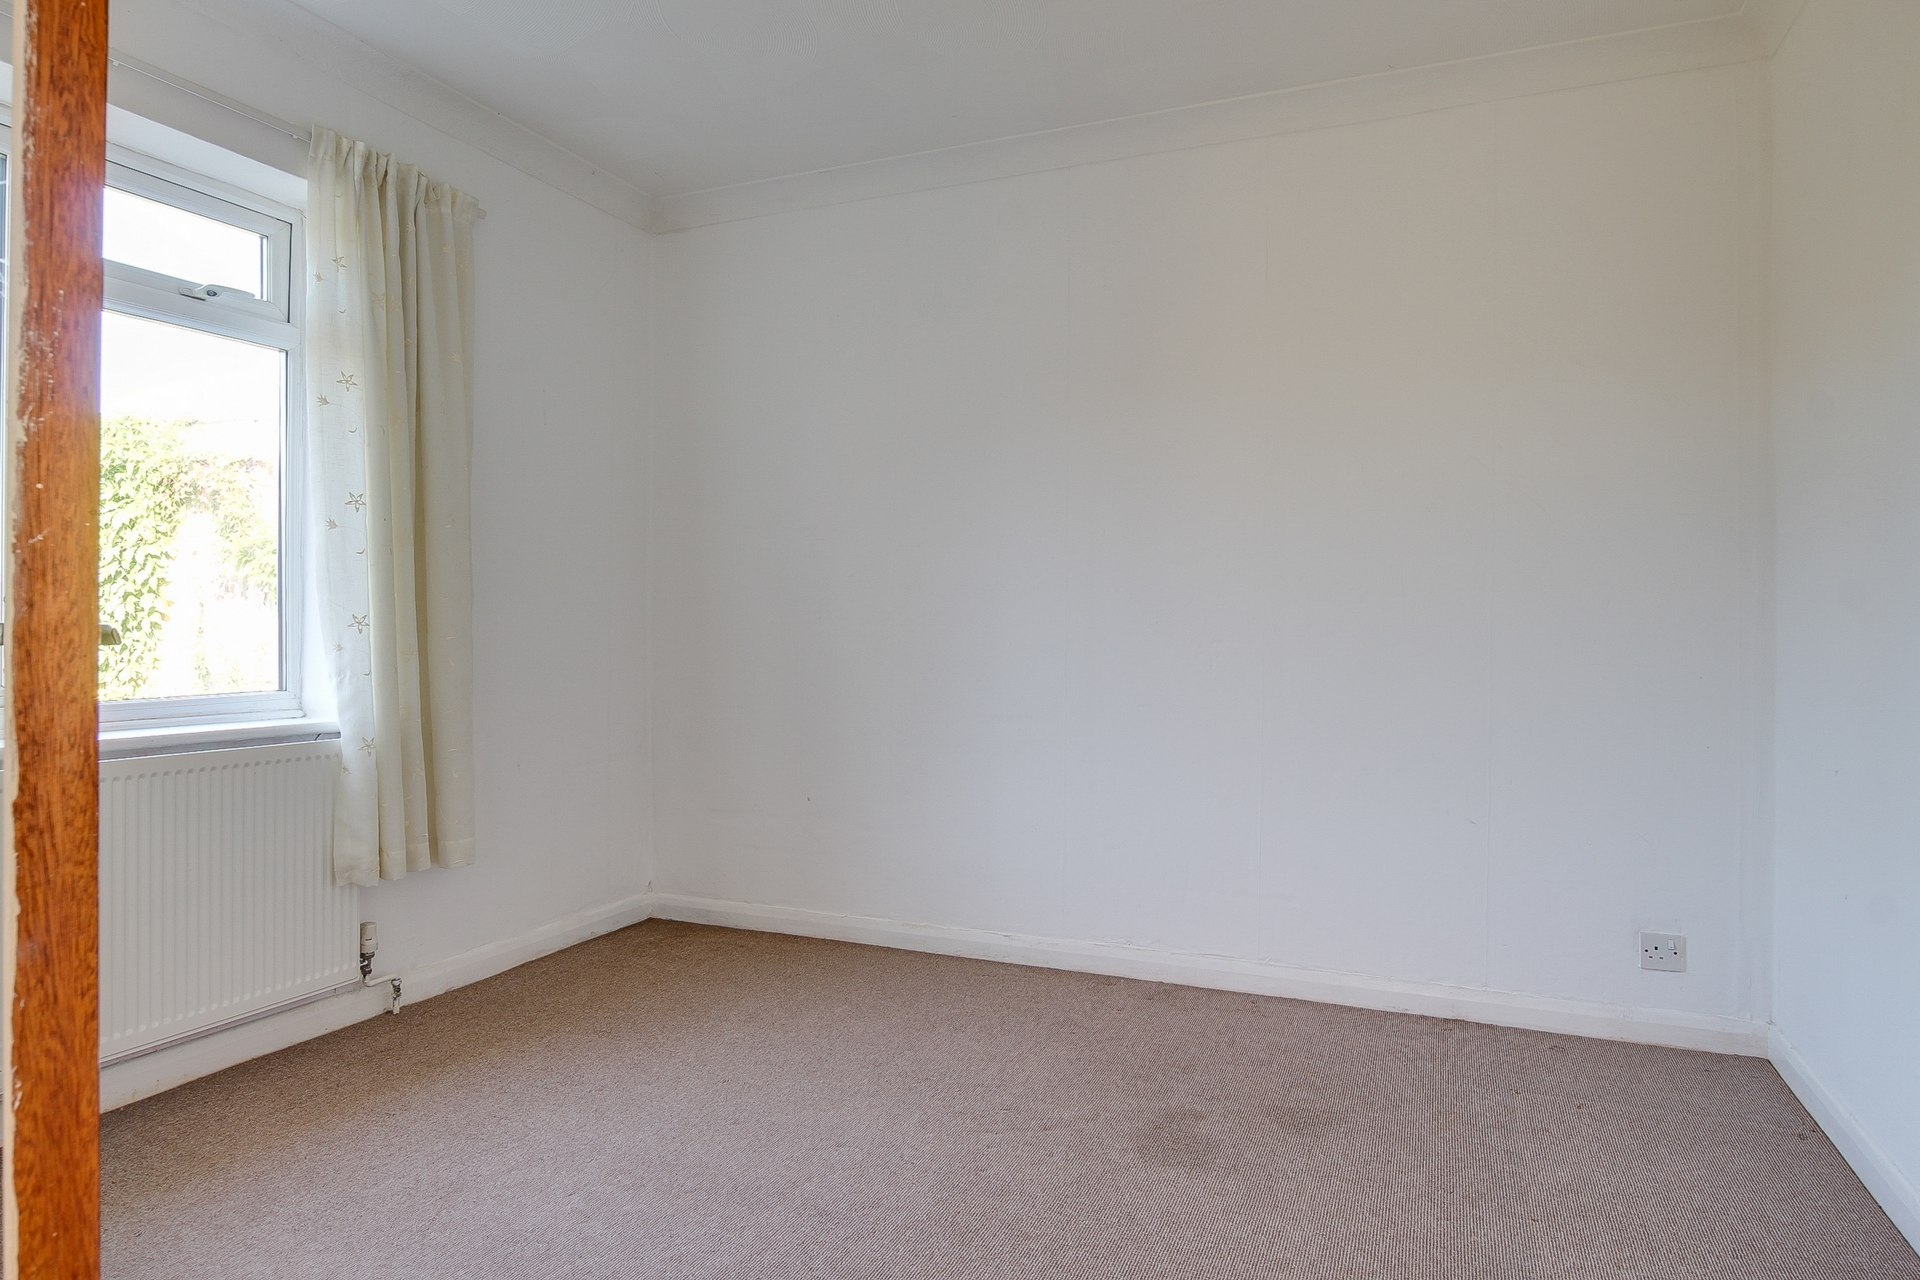 3 bed bungalow to rent in Cheesmans Close, Minster, CT12 9